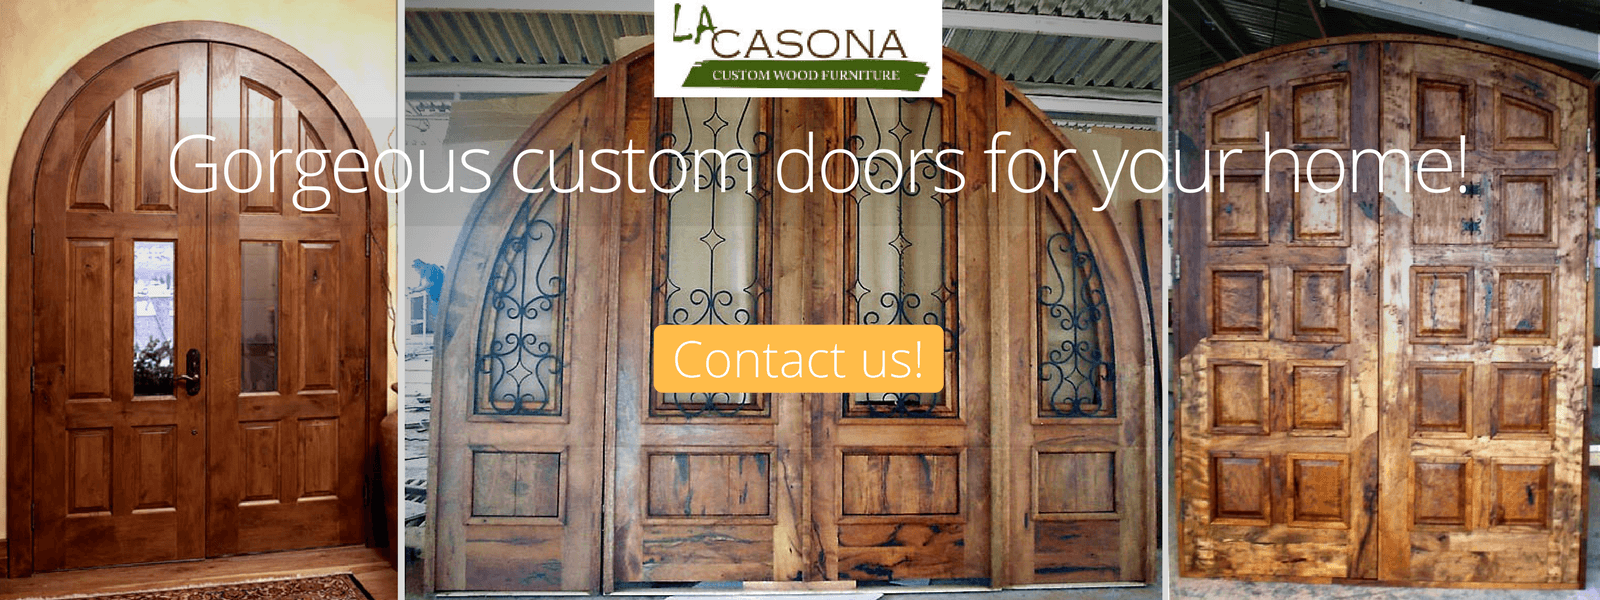 Custom Made Doors and Gates - La Casona Custom Furniture - azcasona.net